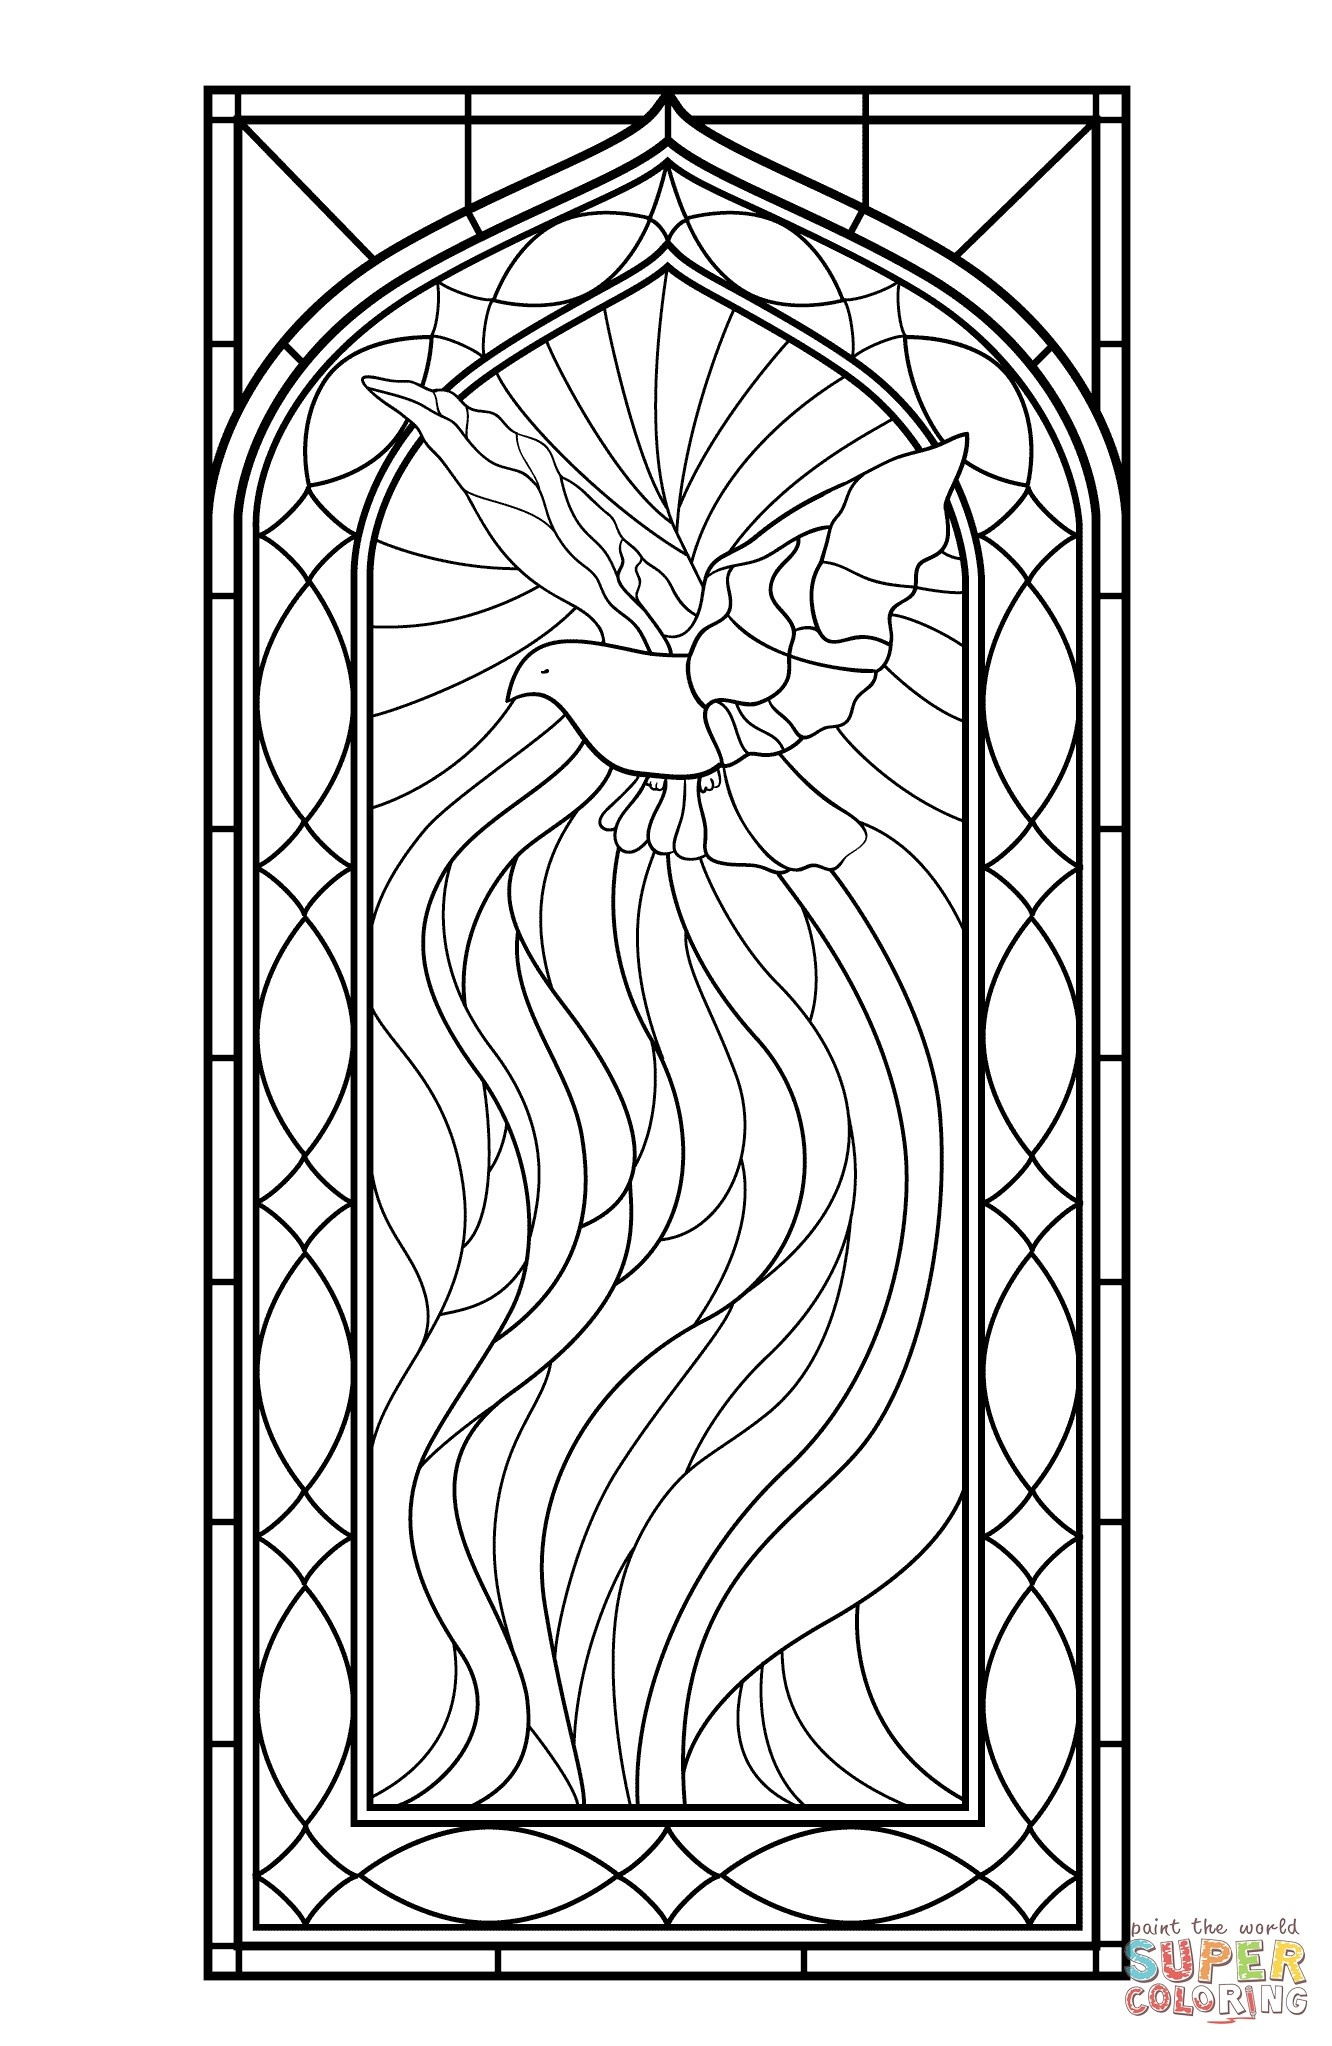 Free Printable Stain Glass Patterns Inspirational Best Collection Of - Free Printable Stained Glass Patterns